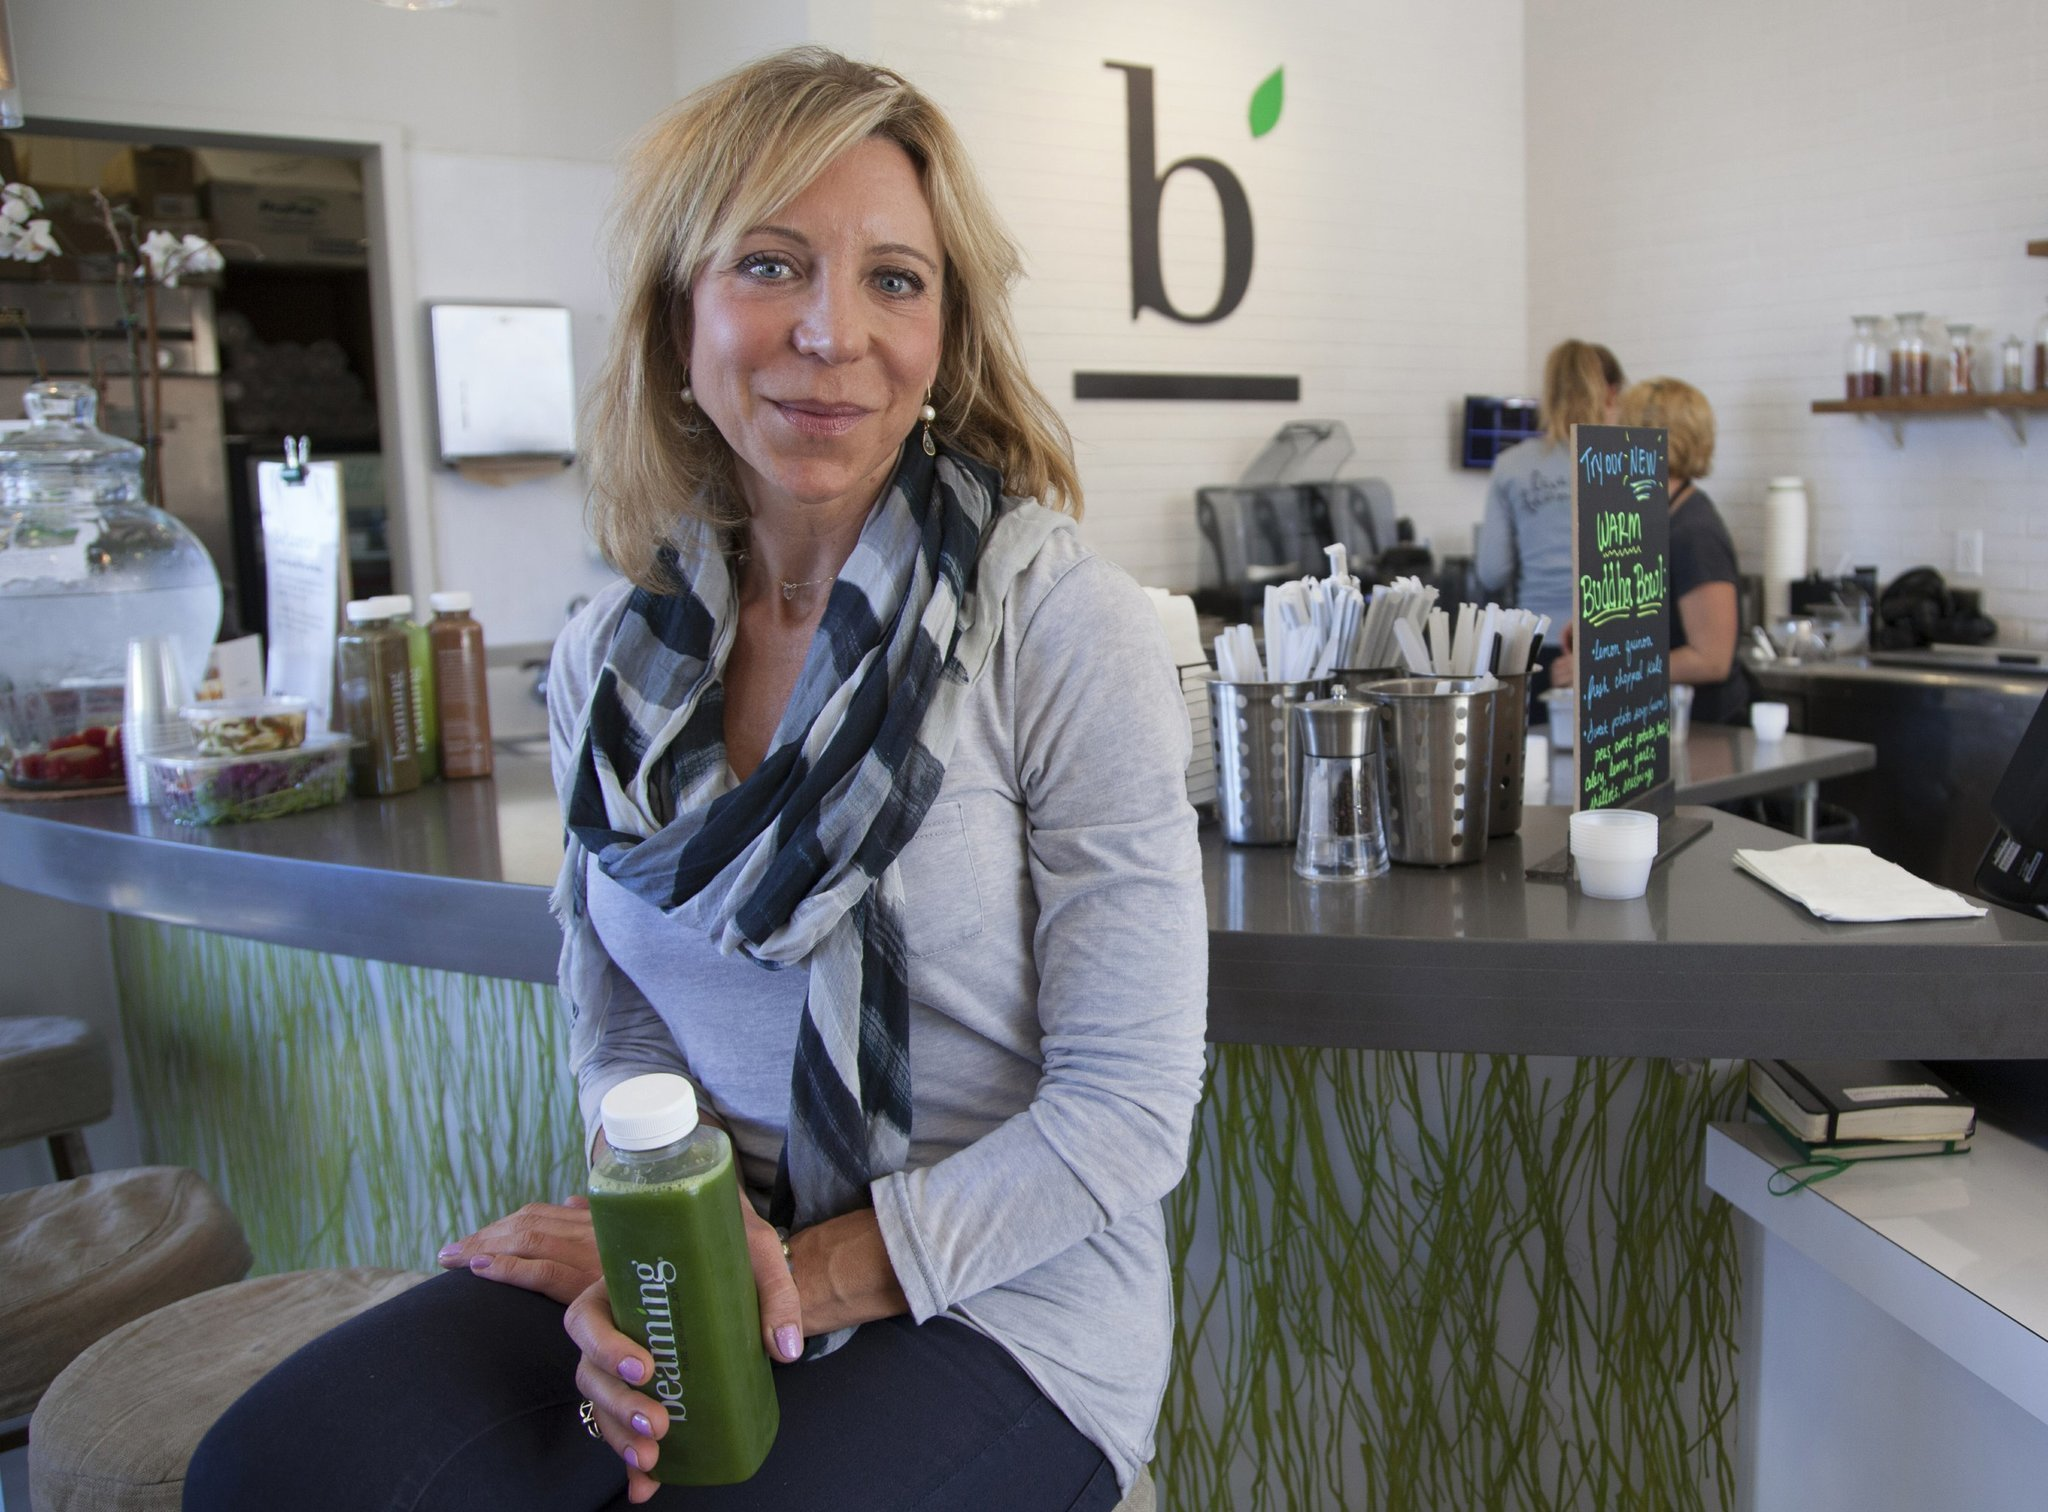 New juice craze its pricey but is it good the san diego union new juice craze its pricey but is it good the san diego union tribune malvernweather Choice Image